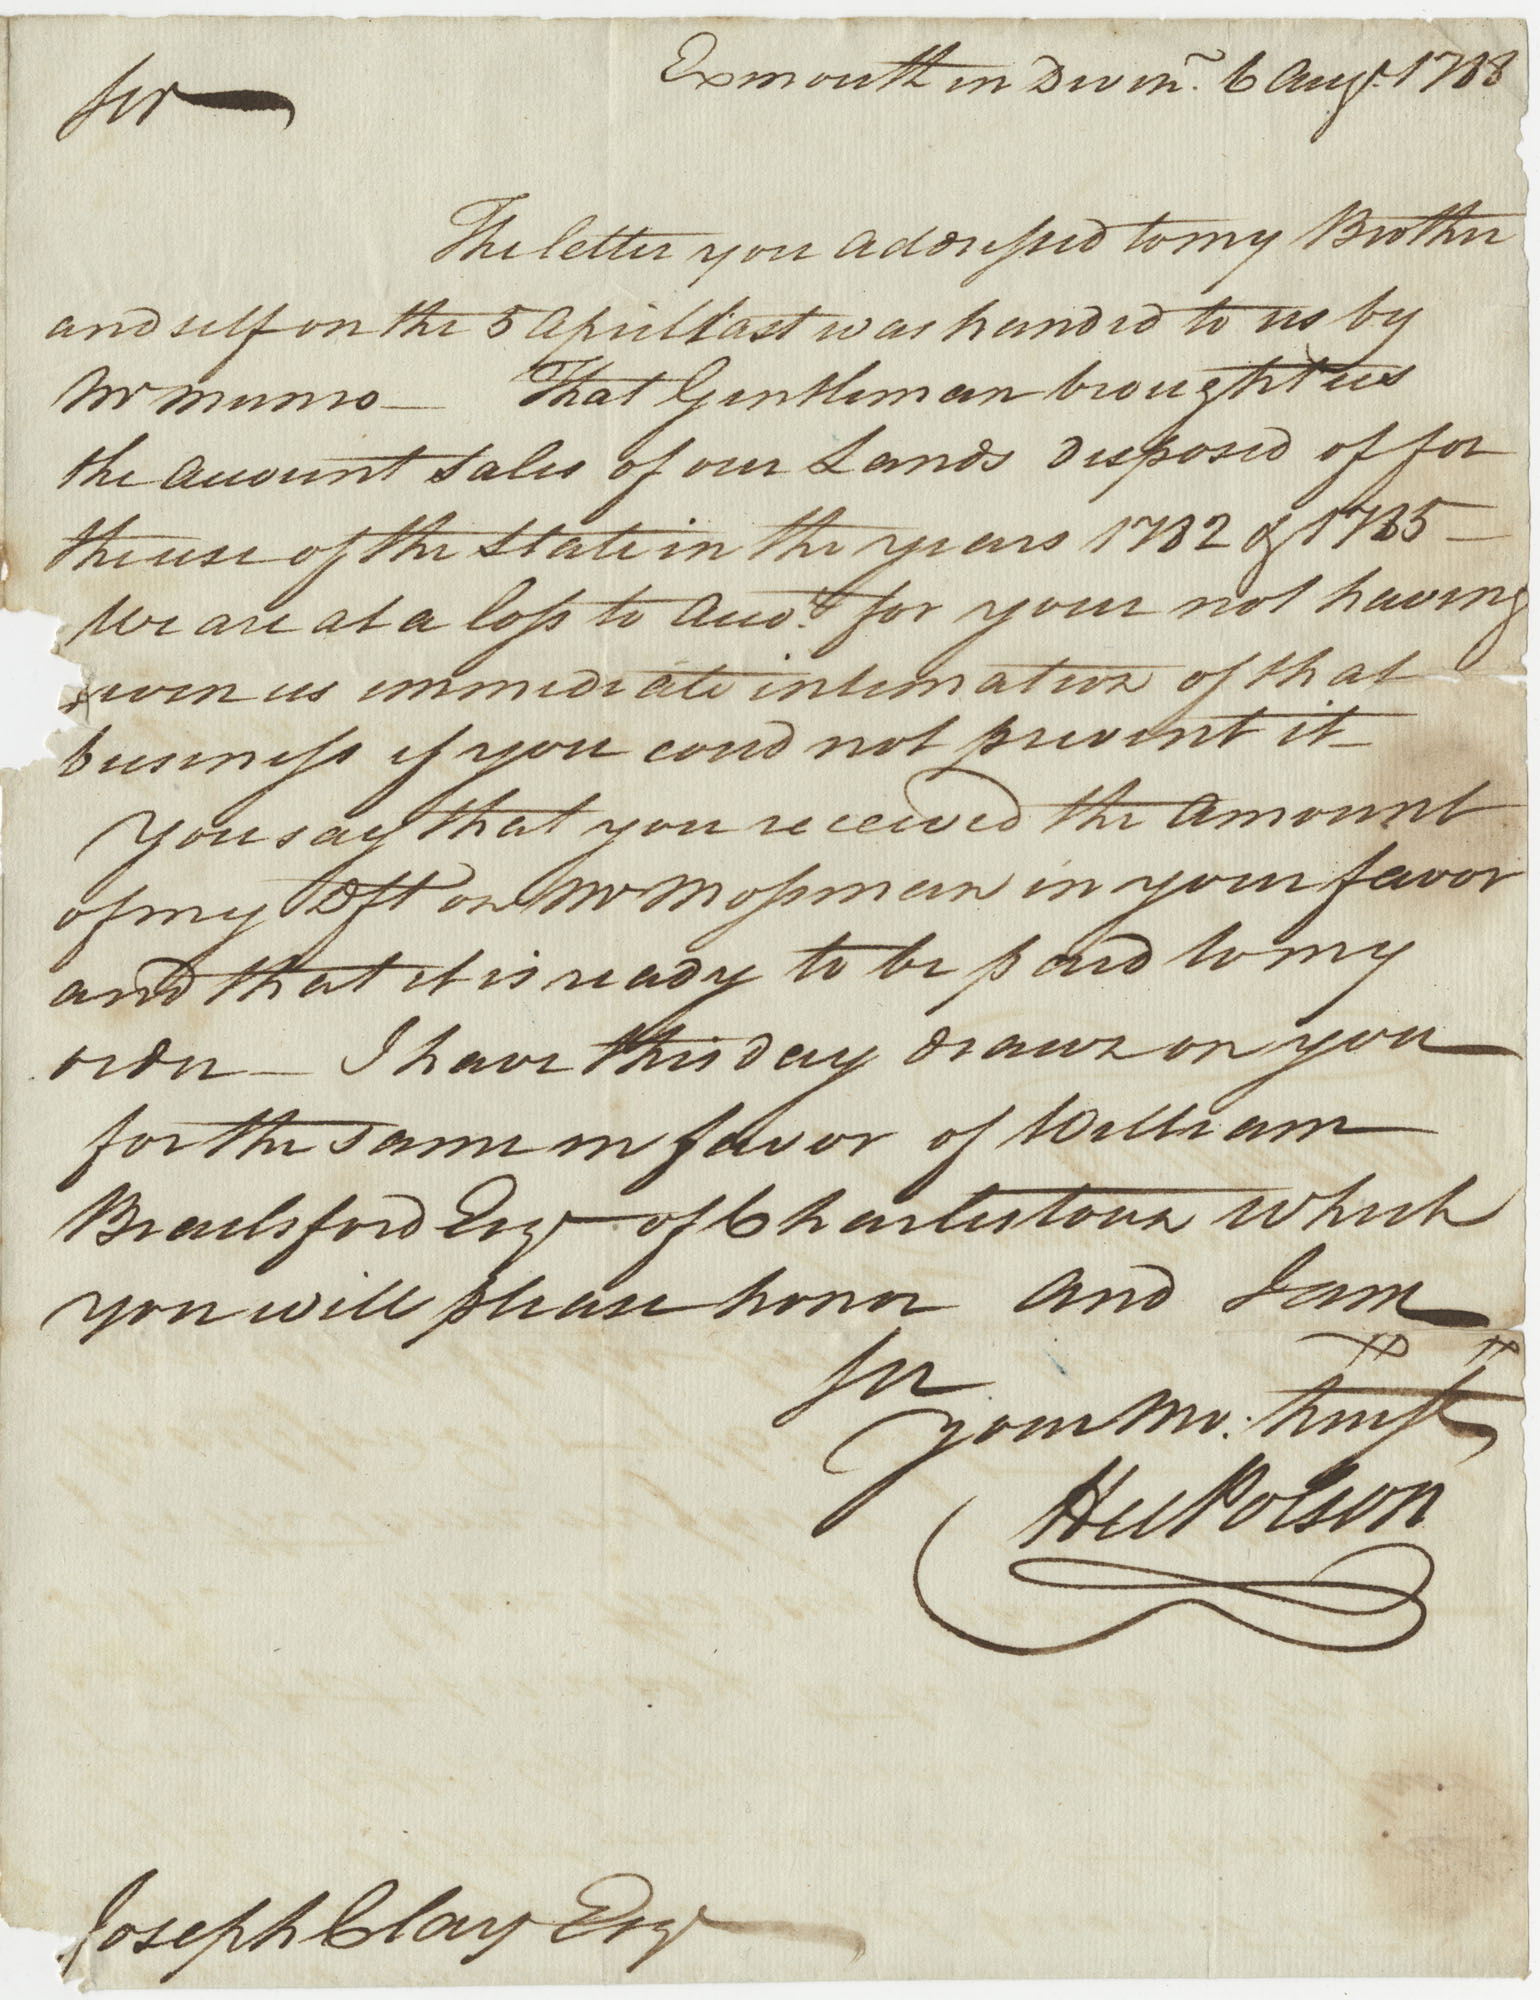 Letter to Joseph Clay from Hugh Polson, August 6, 1788